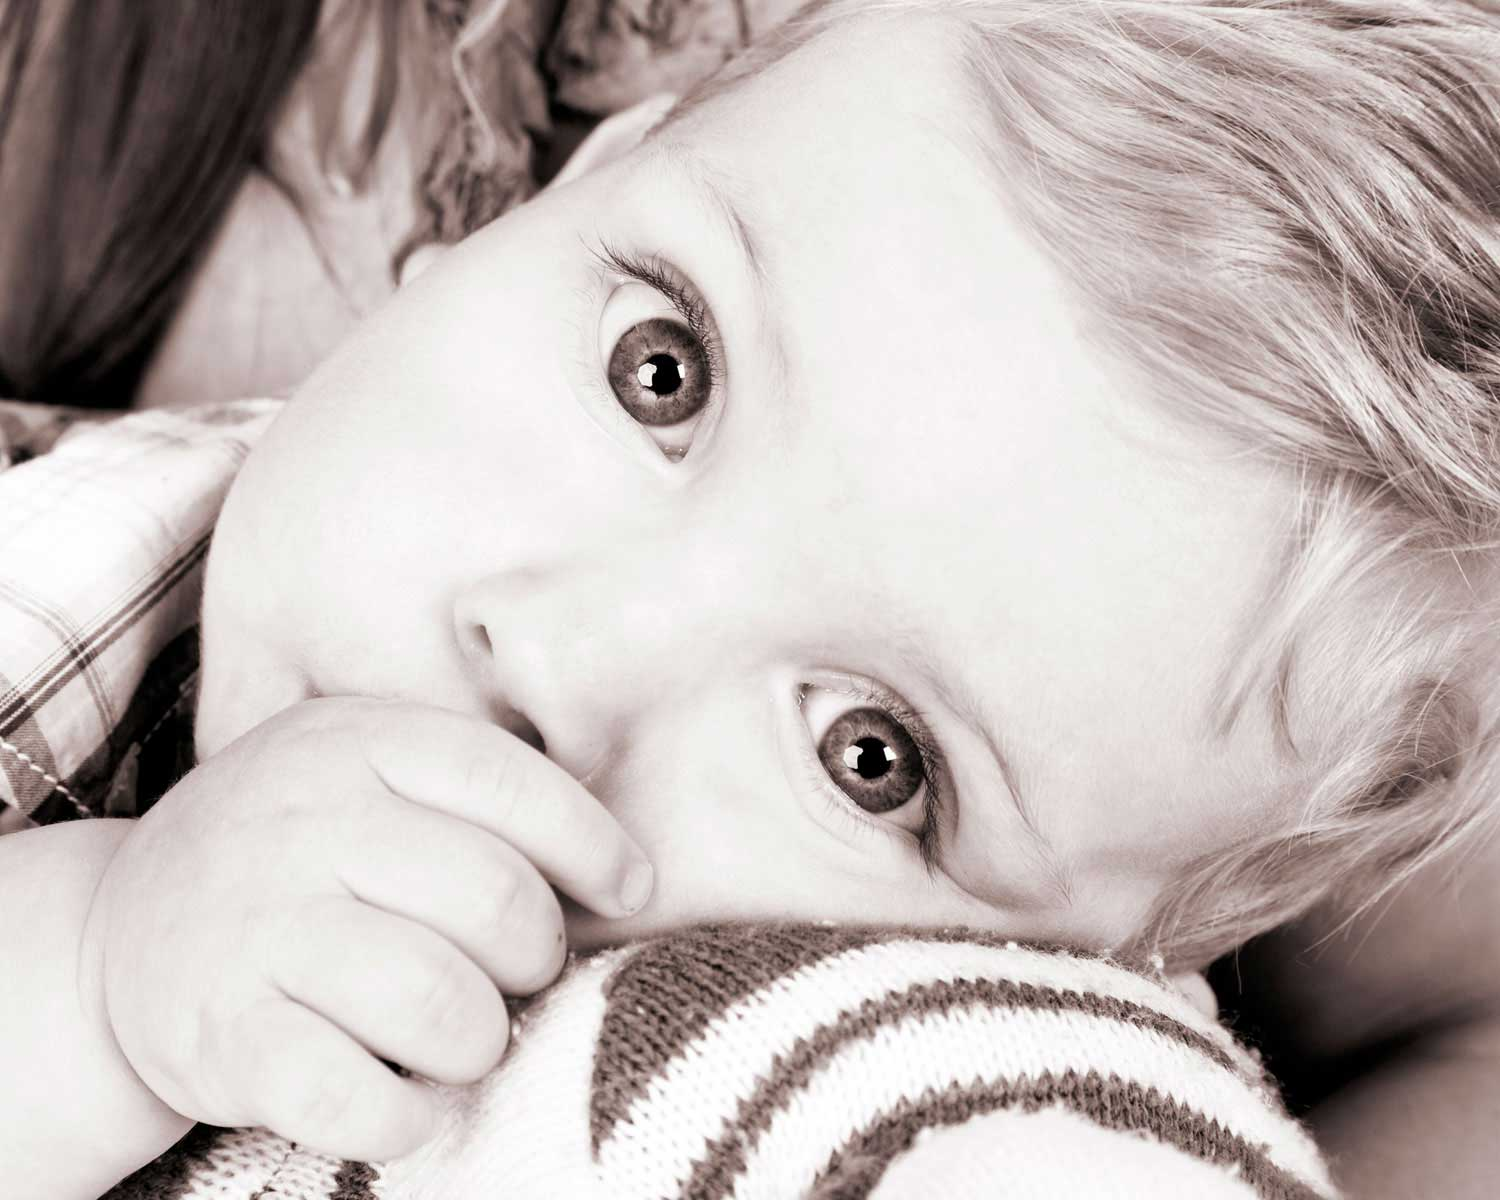 Baby And Toddler Portrait Photography 0032